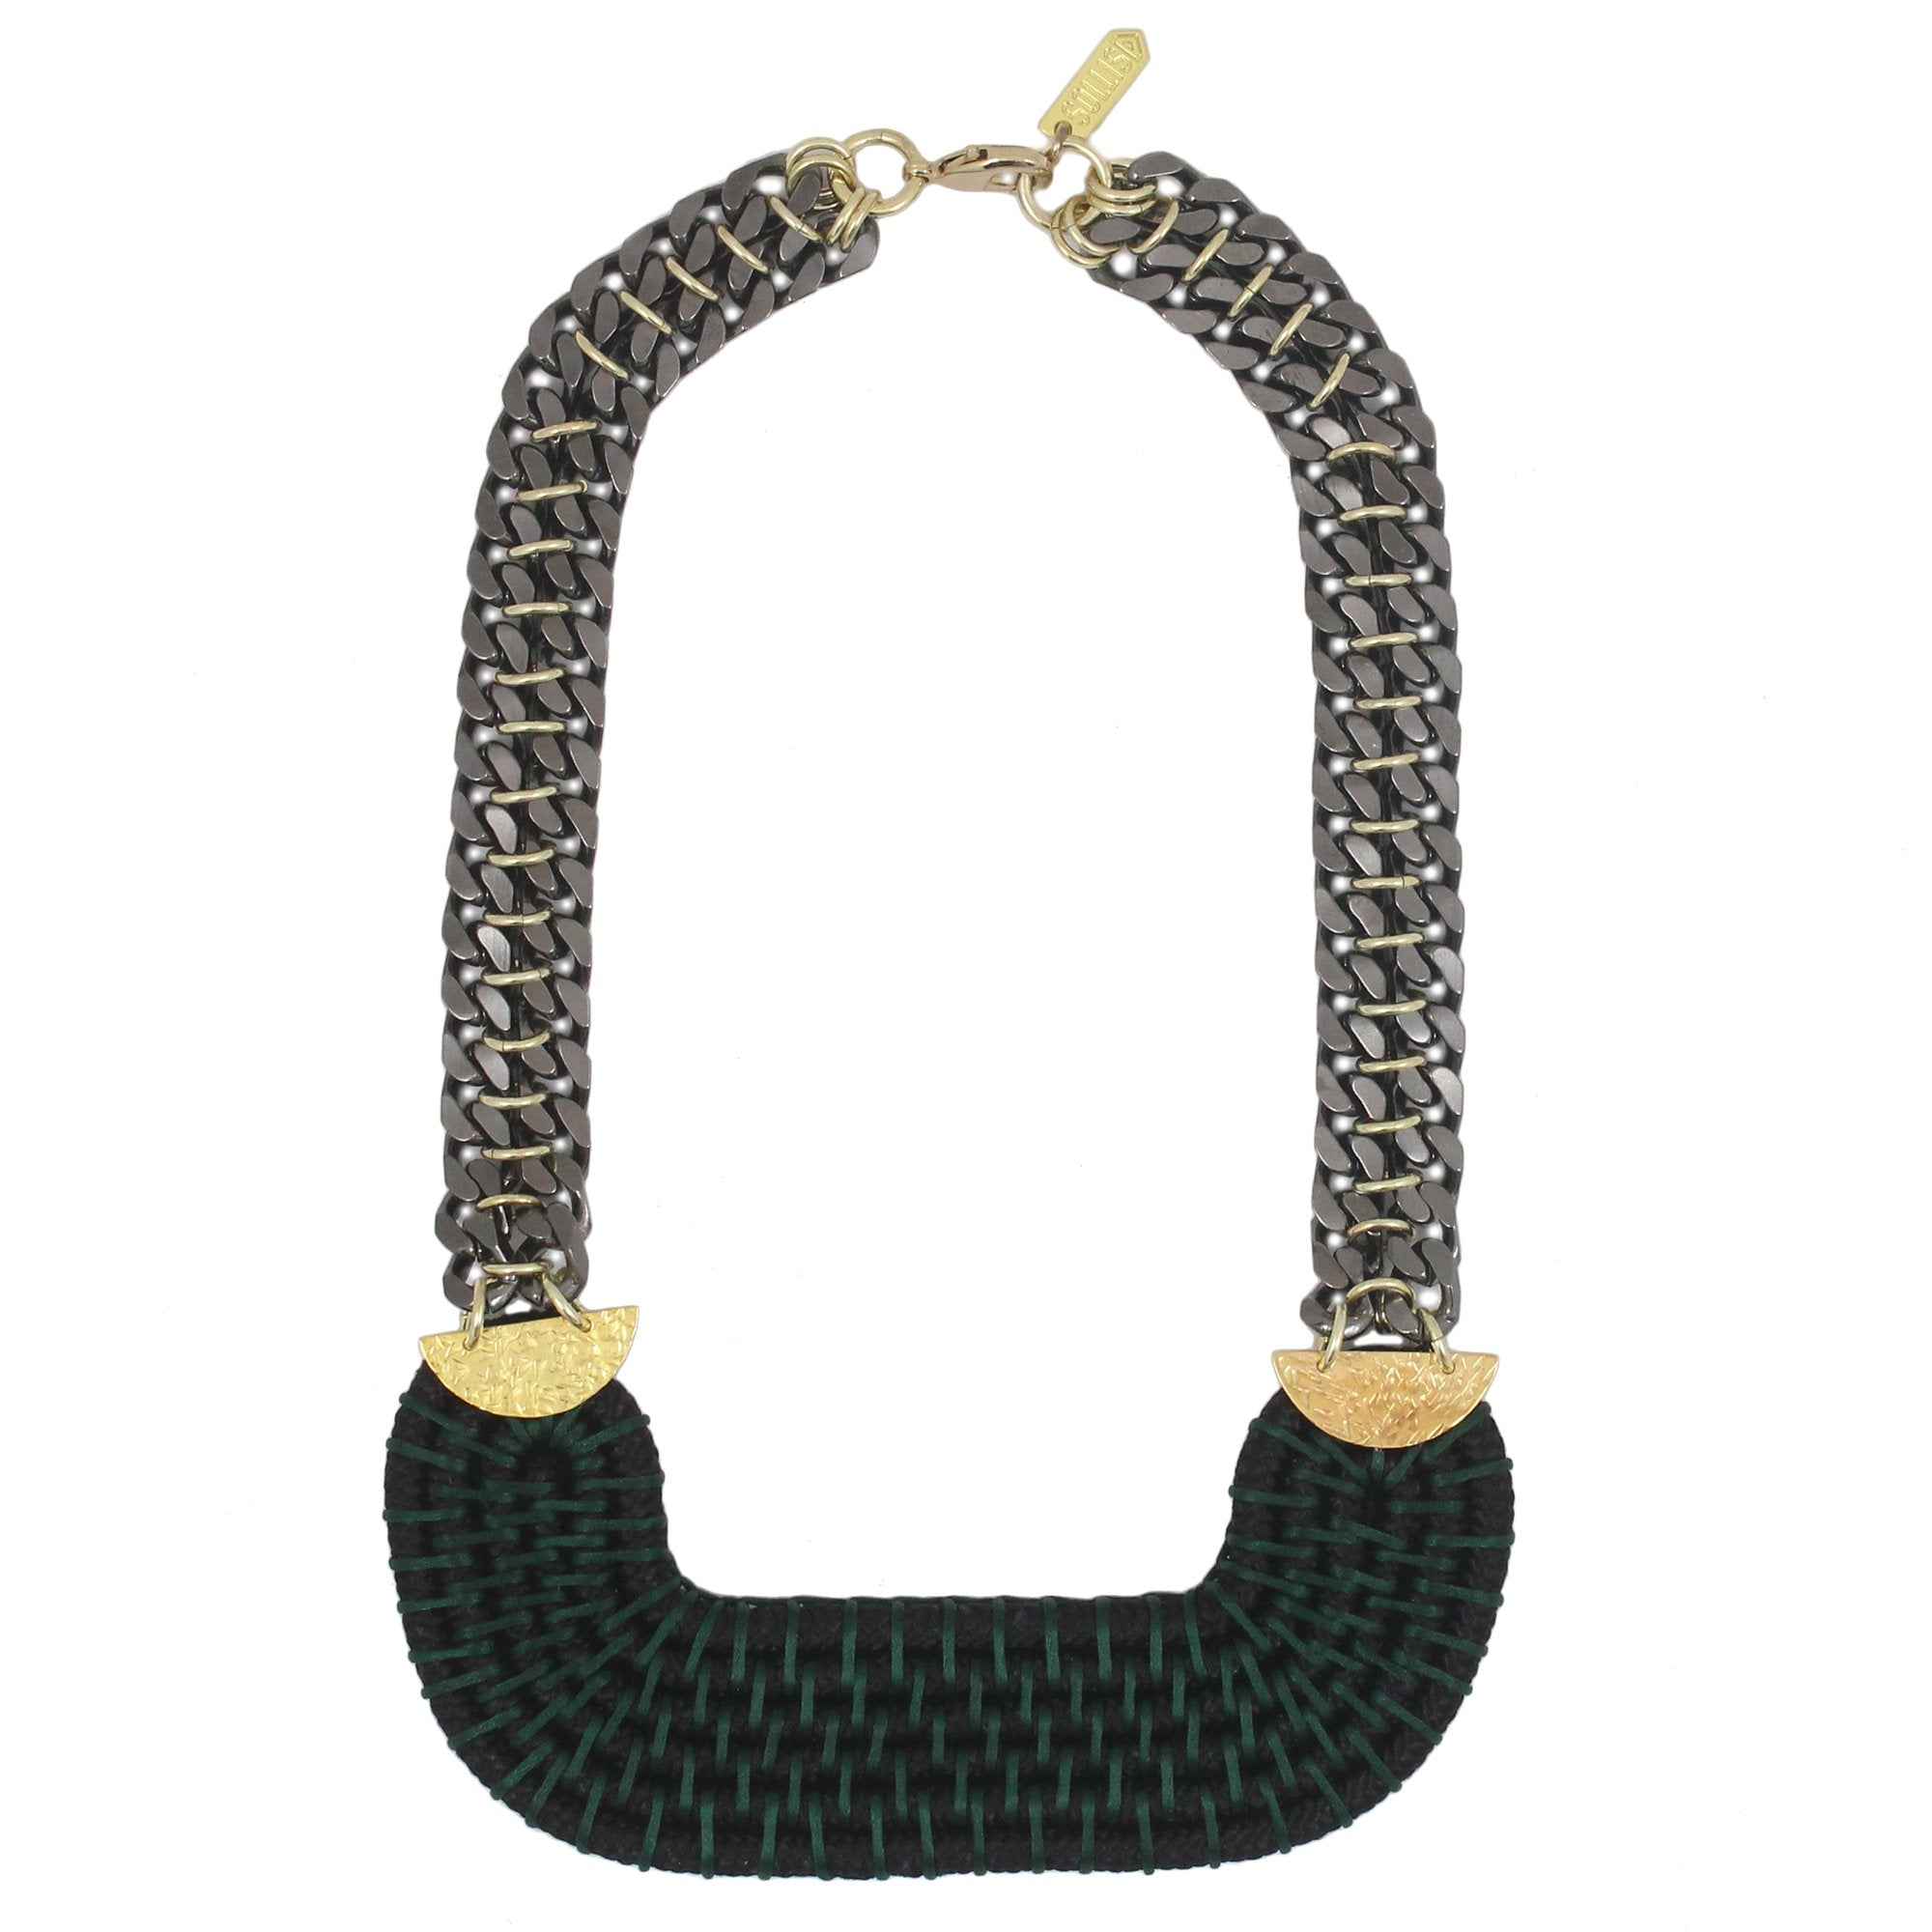 NANDI necklace - 40% OFF